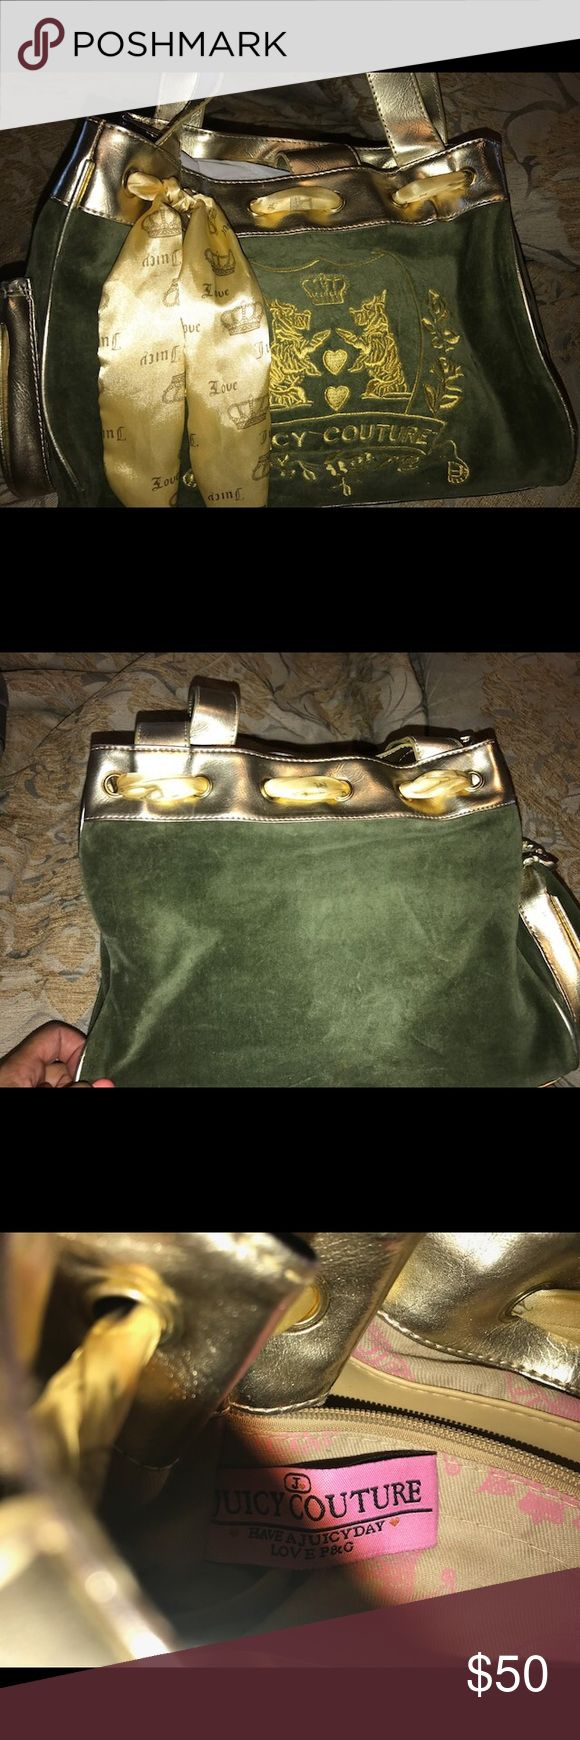 JUICY COUTURE Handbag!!  Gold and olive green JUICY COUTURE handbag.  Great condition.  Juicy Couture Bags Shoulder Bags